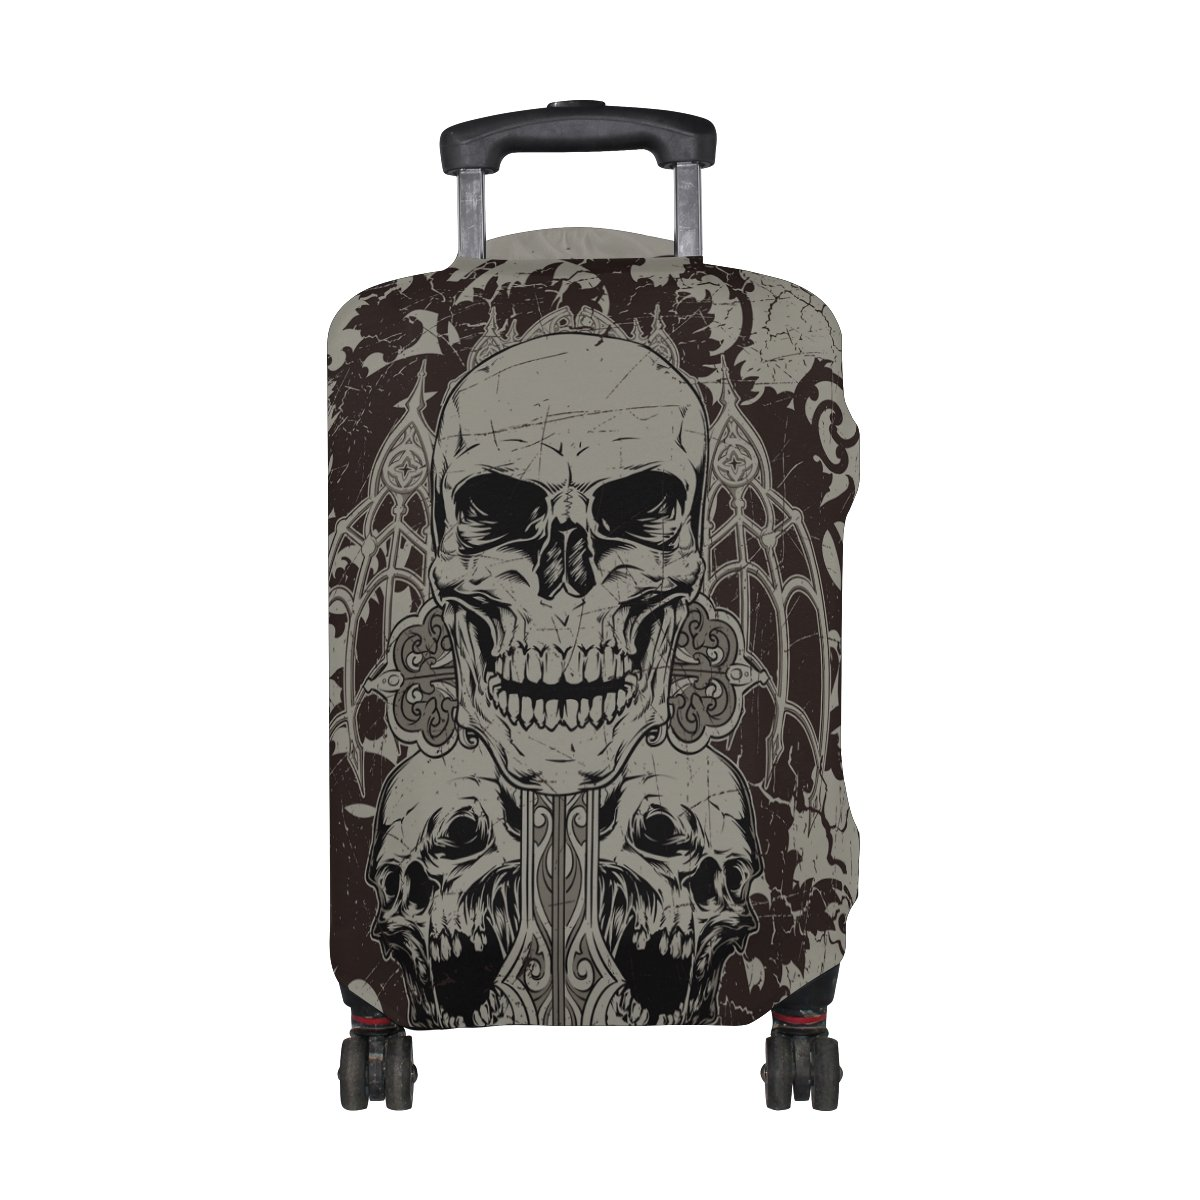 Bigcardesigns 18-30 Luggage Protective Covers Colorful Skull